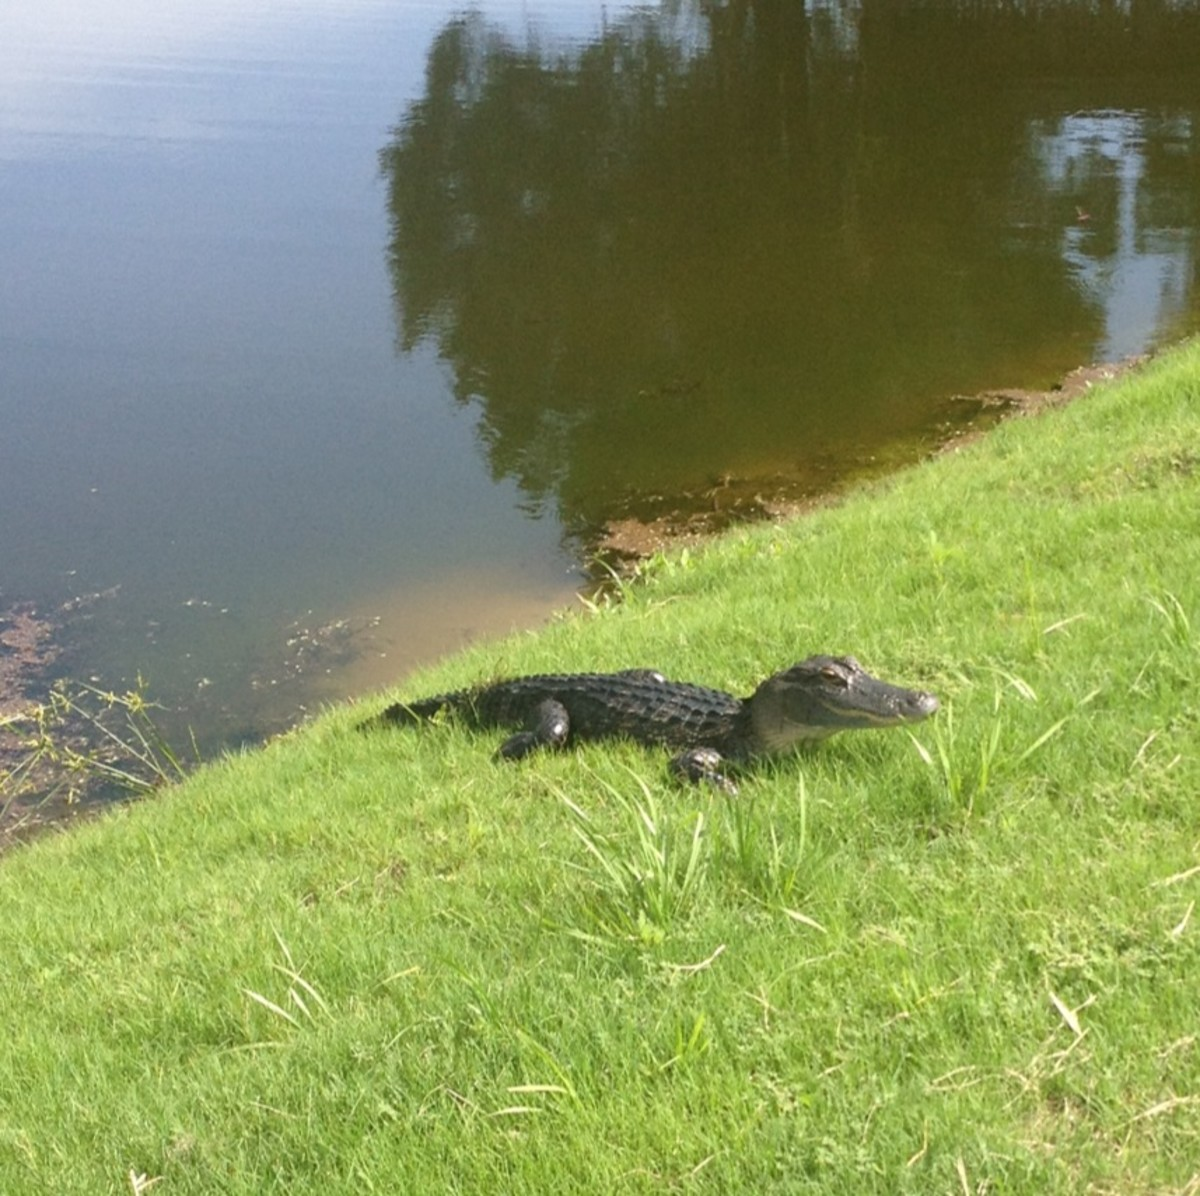 A young alligator sunning itself. Gators are everywhere in Florida and they are a common sight as they leave the water to sun themselves.